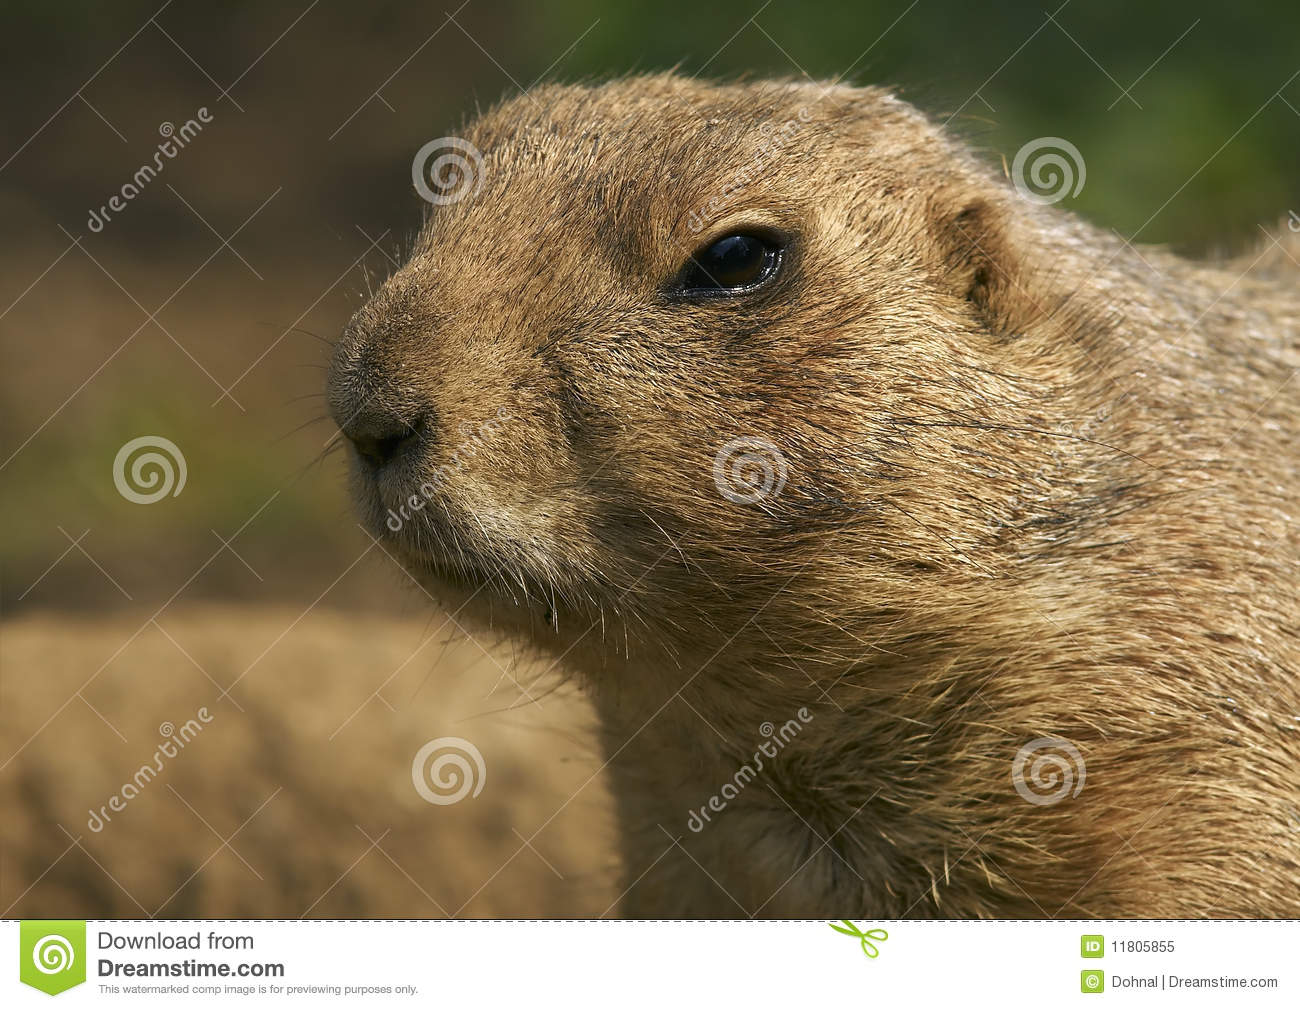 an overview of the praire dog cynomys ludovicianus Spontaneous lymphoma in a prairie dog (cynomys ludovicianus) a 4-year-old, female, black-tailed prairie dog (cynomys ludovicianus) was examined for acute.